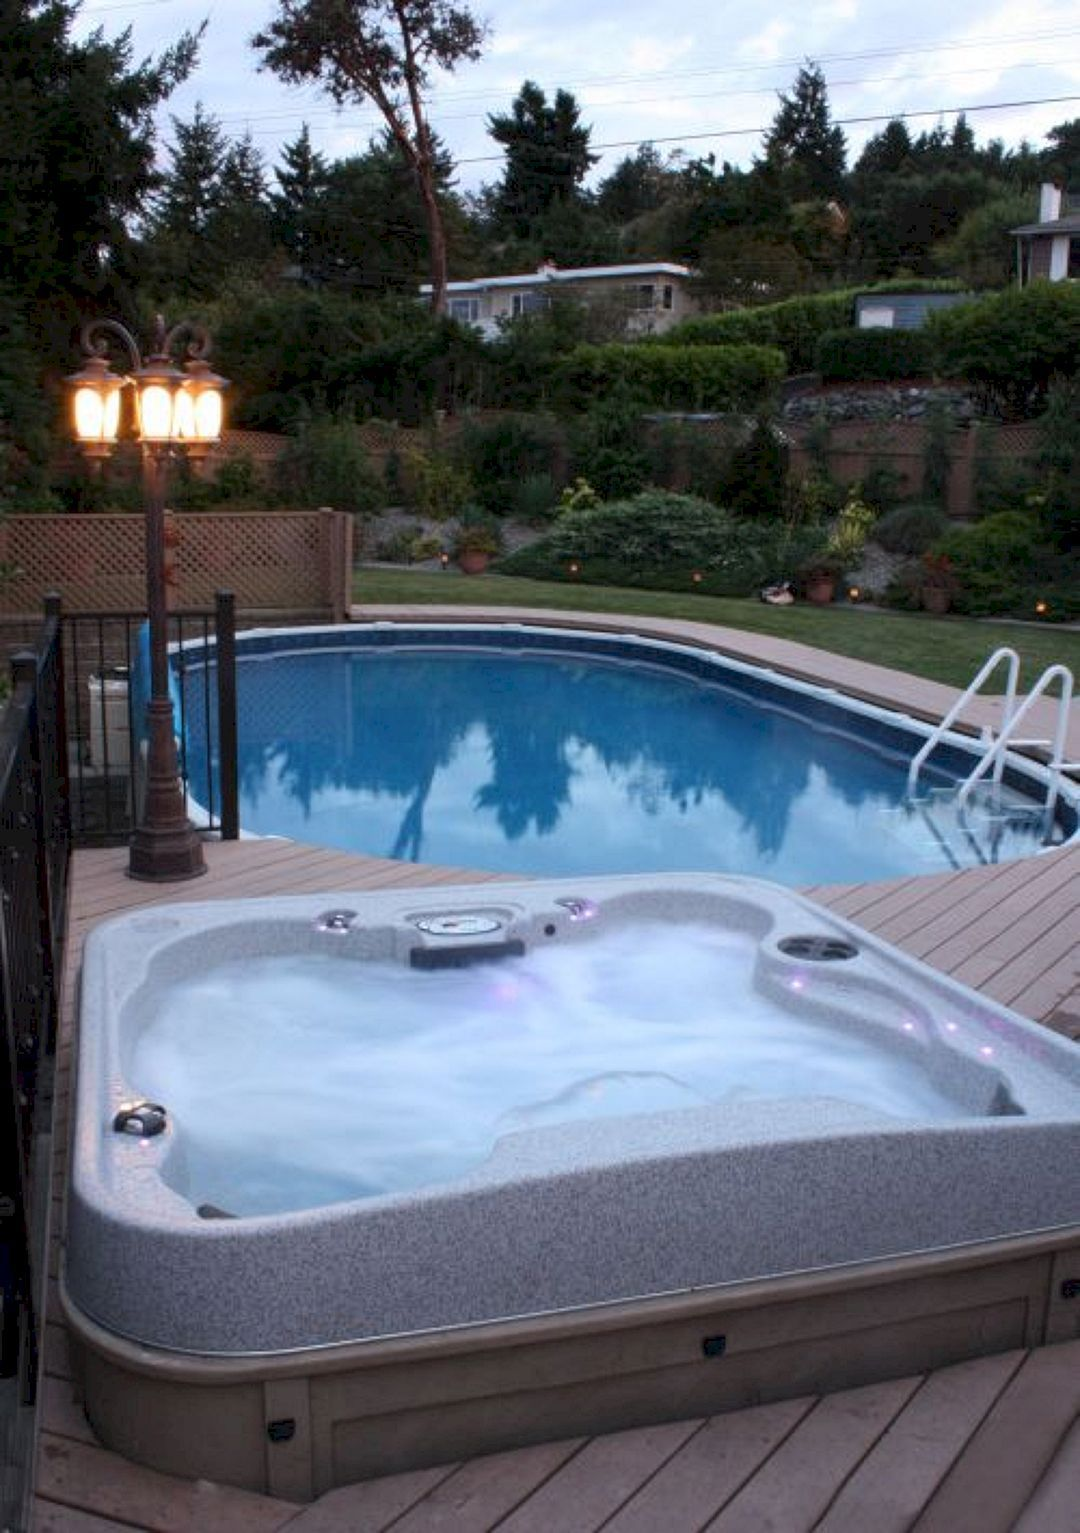 Top 24 diy above ground pool ideas on a budget pool - Above ground pool ideas on a budget ...